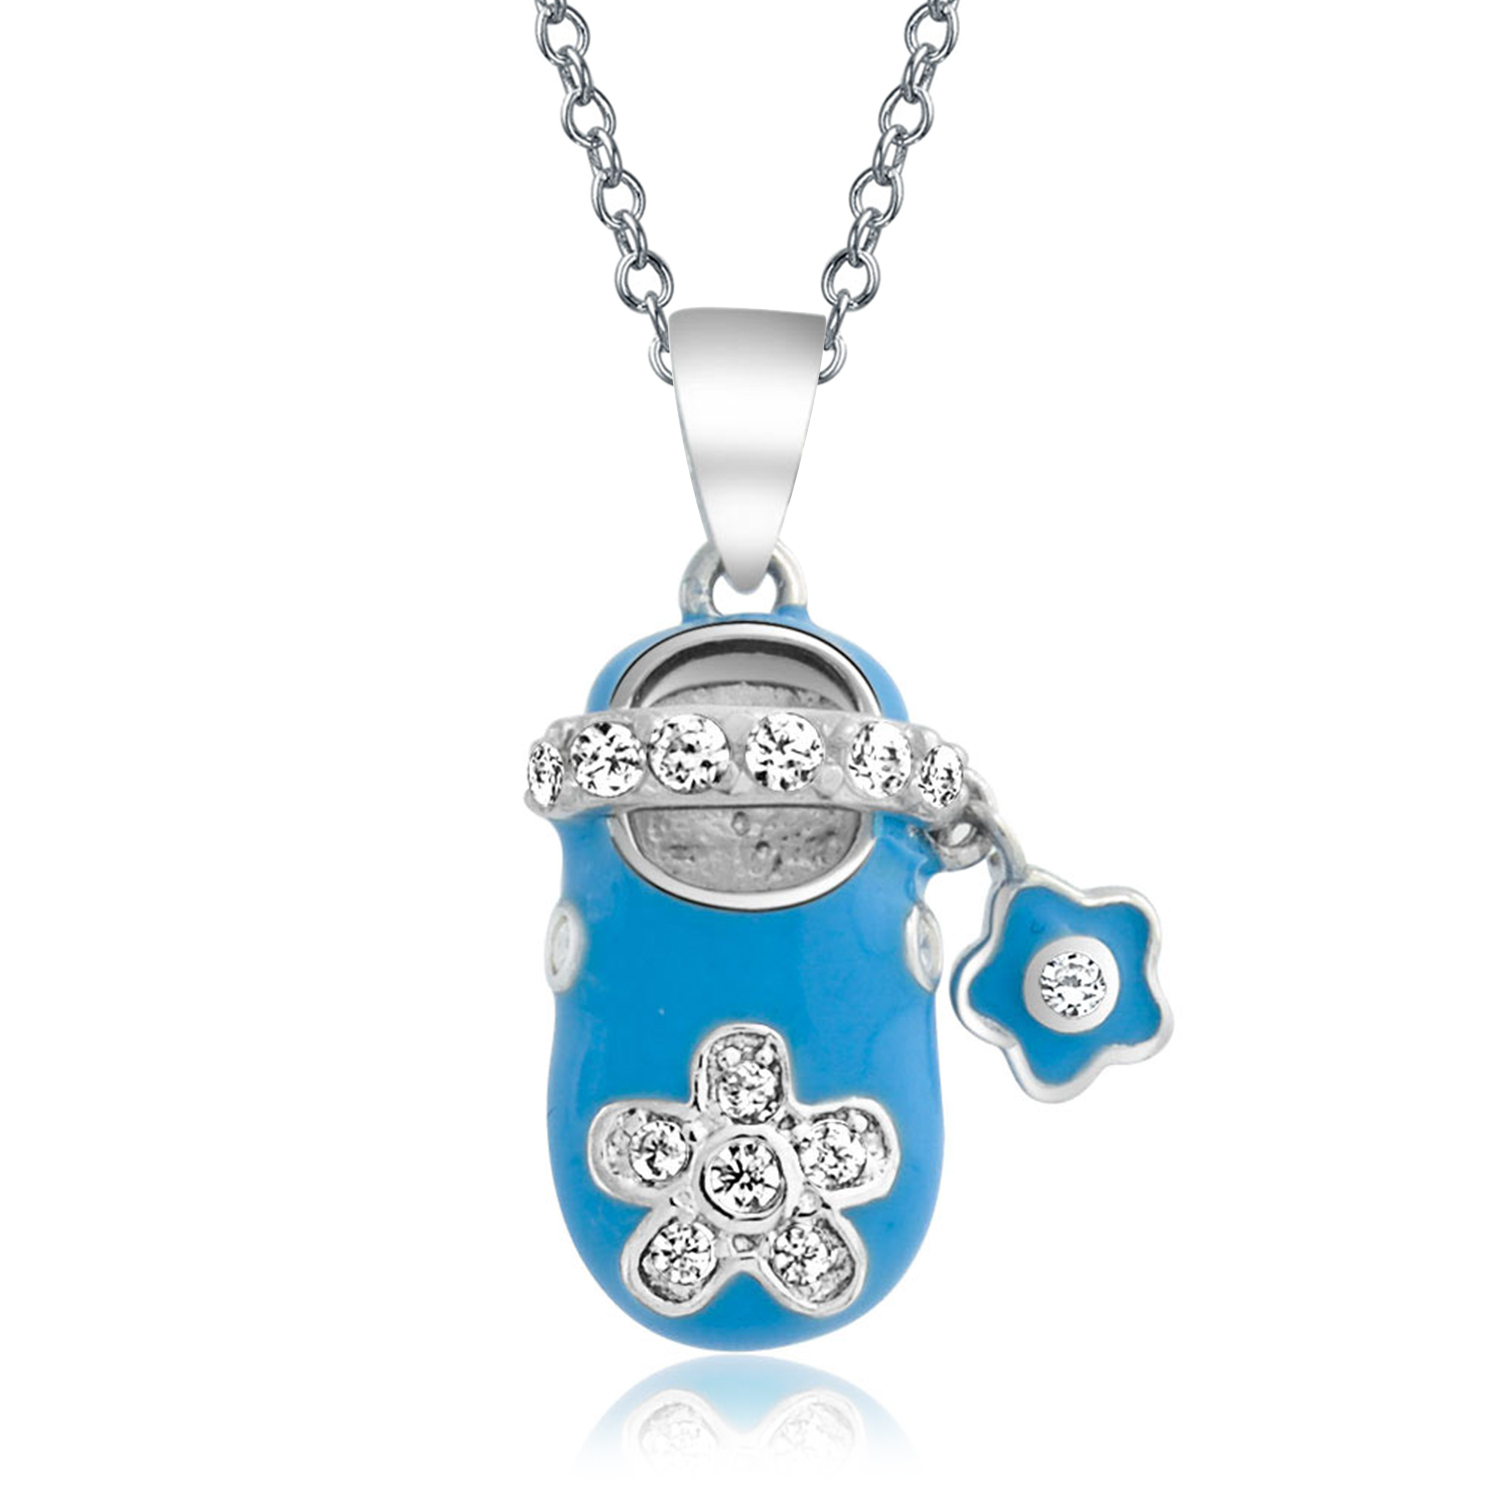 Details About Baby Shoe Charm Pendant Gift For New Mother Blue Cz Flower  Sterling Silver Throughout Most Recently Released Baby Blue Enamel Blue Heart Petite Locket Charm Necklaces (Gallery 8 of 25)